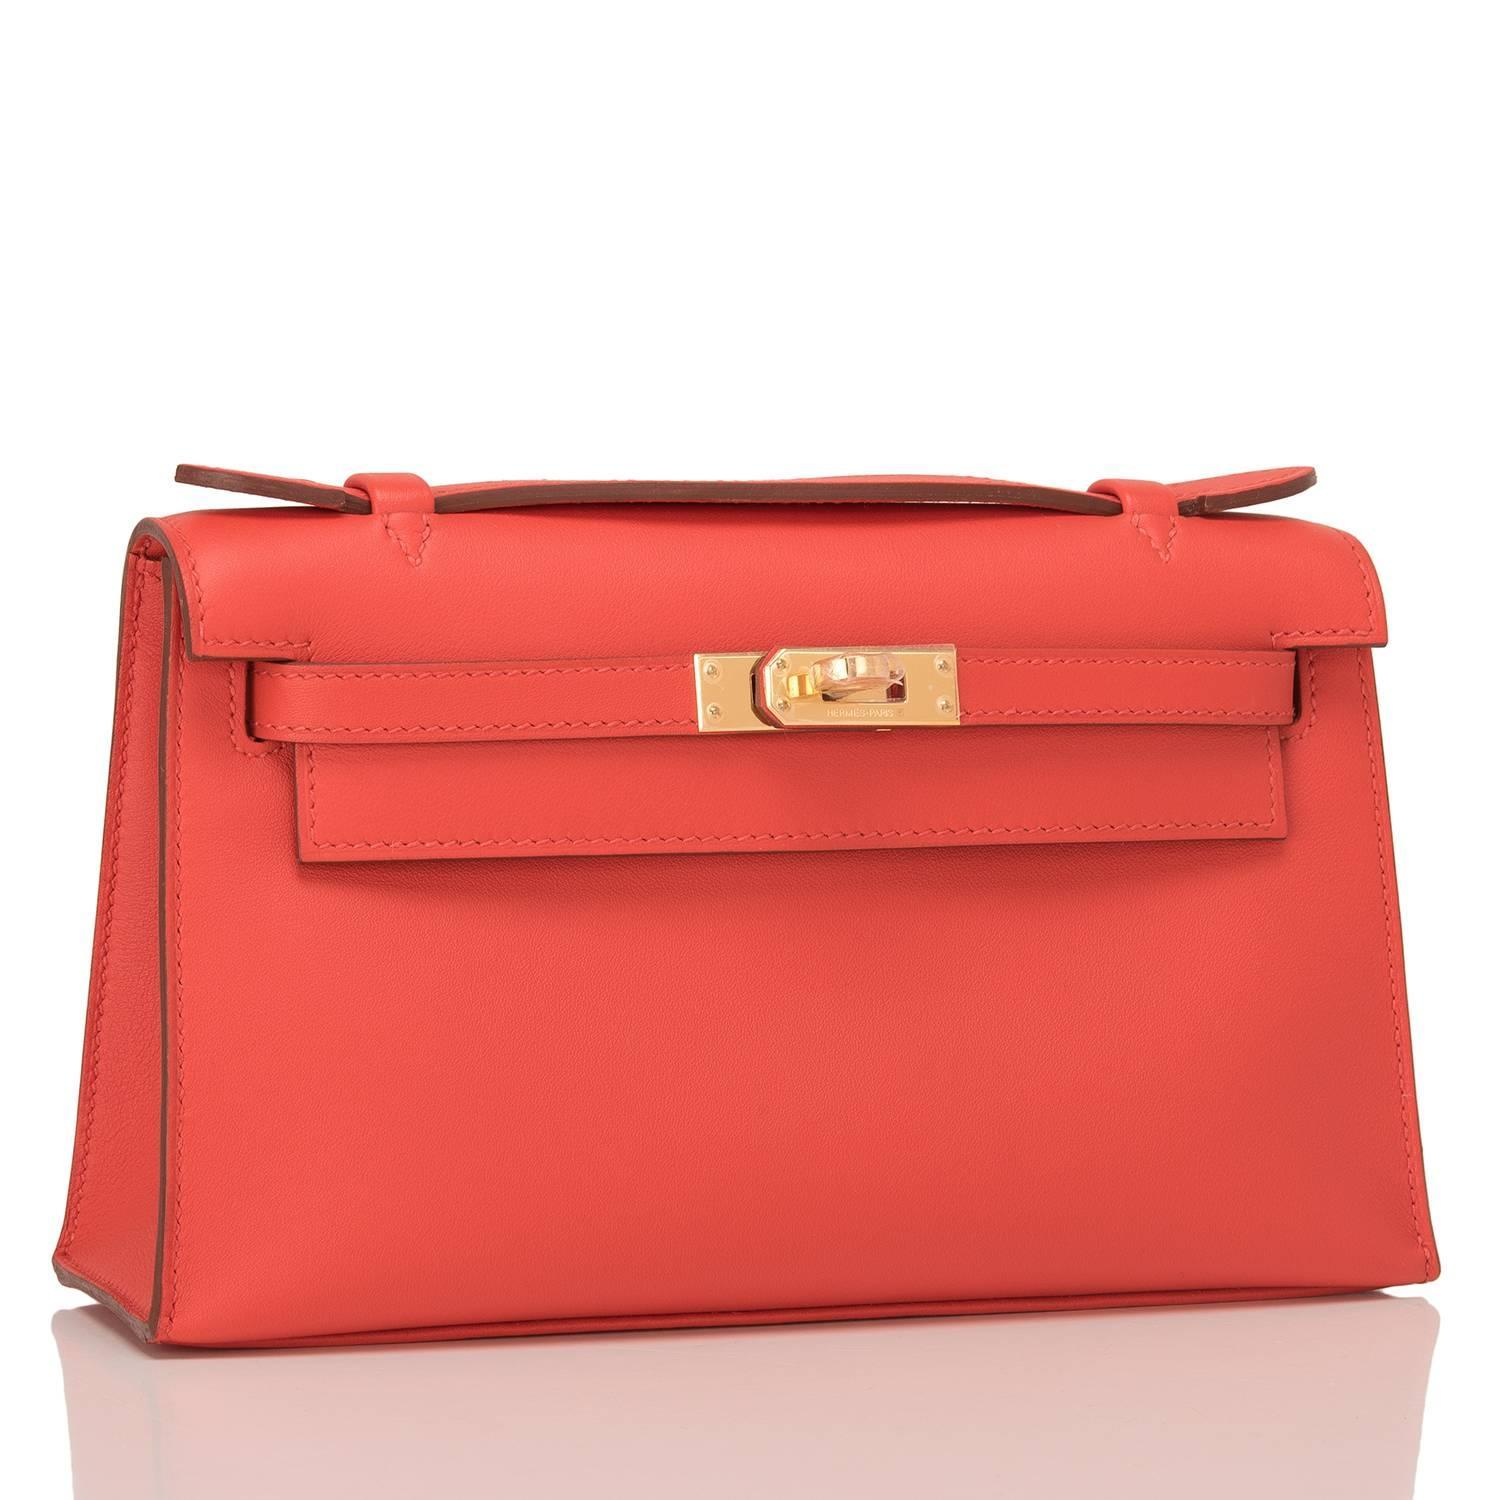 great hermes handbags - Hermes Capucine Swift Mini Kelly Pochette For Sale at 1stdibs